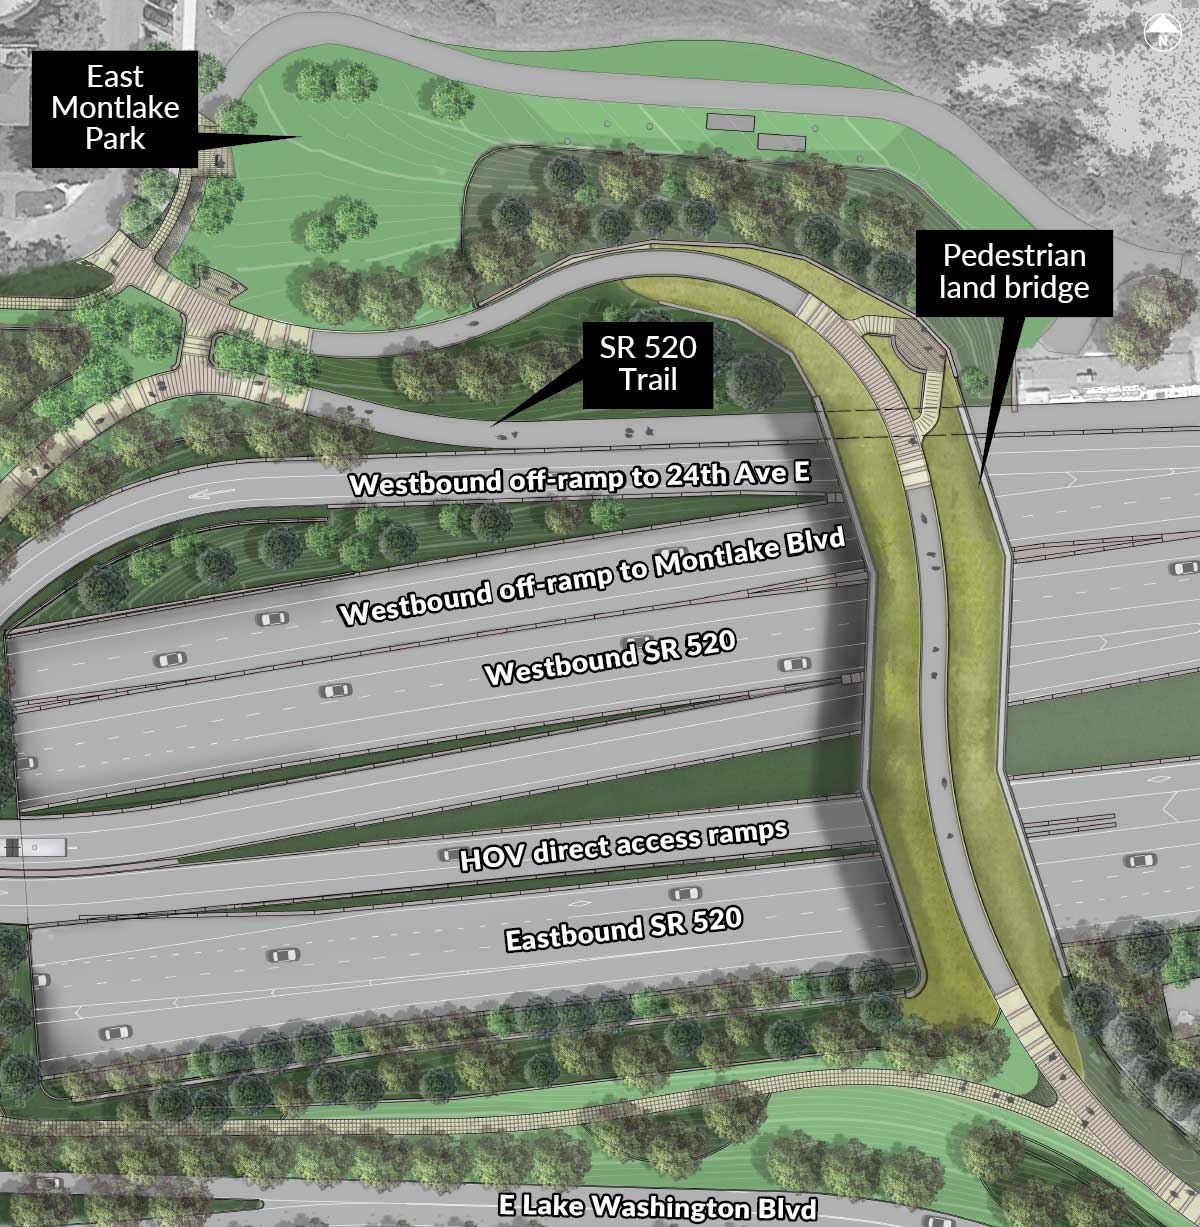 Map of the pedestrian land bridge area showing the positions of various features.